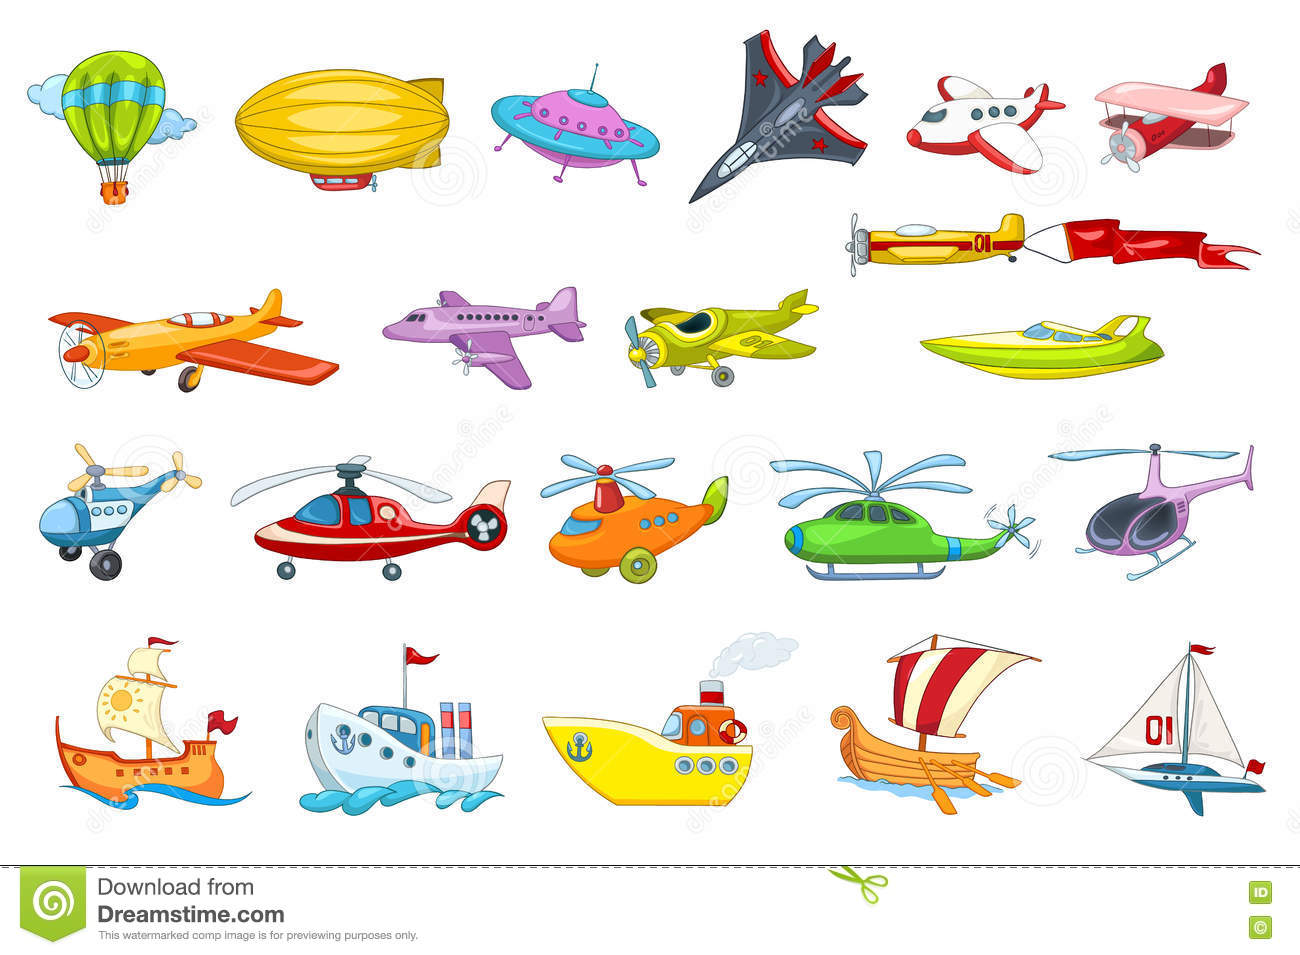 Air and water clipart #11